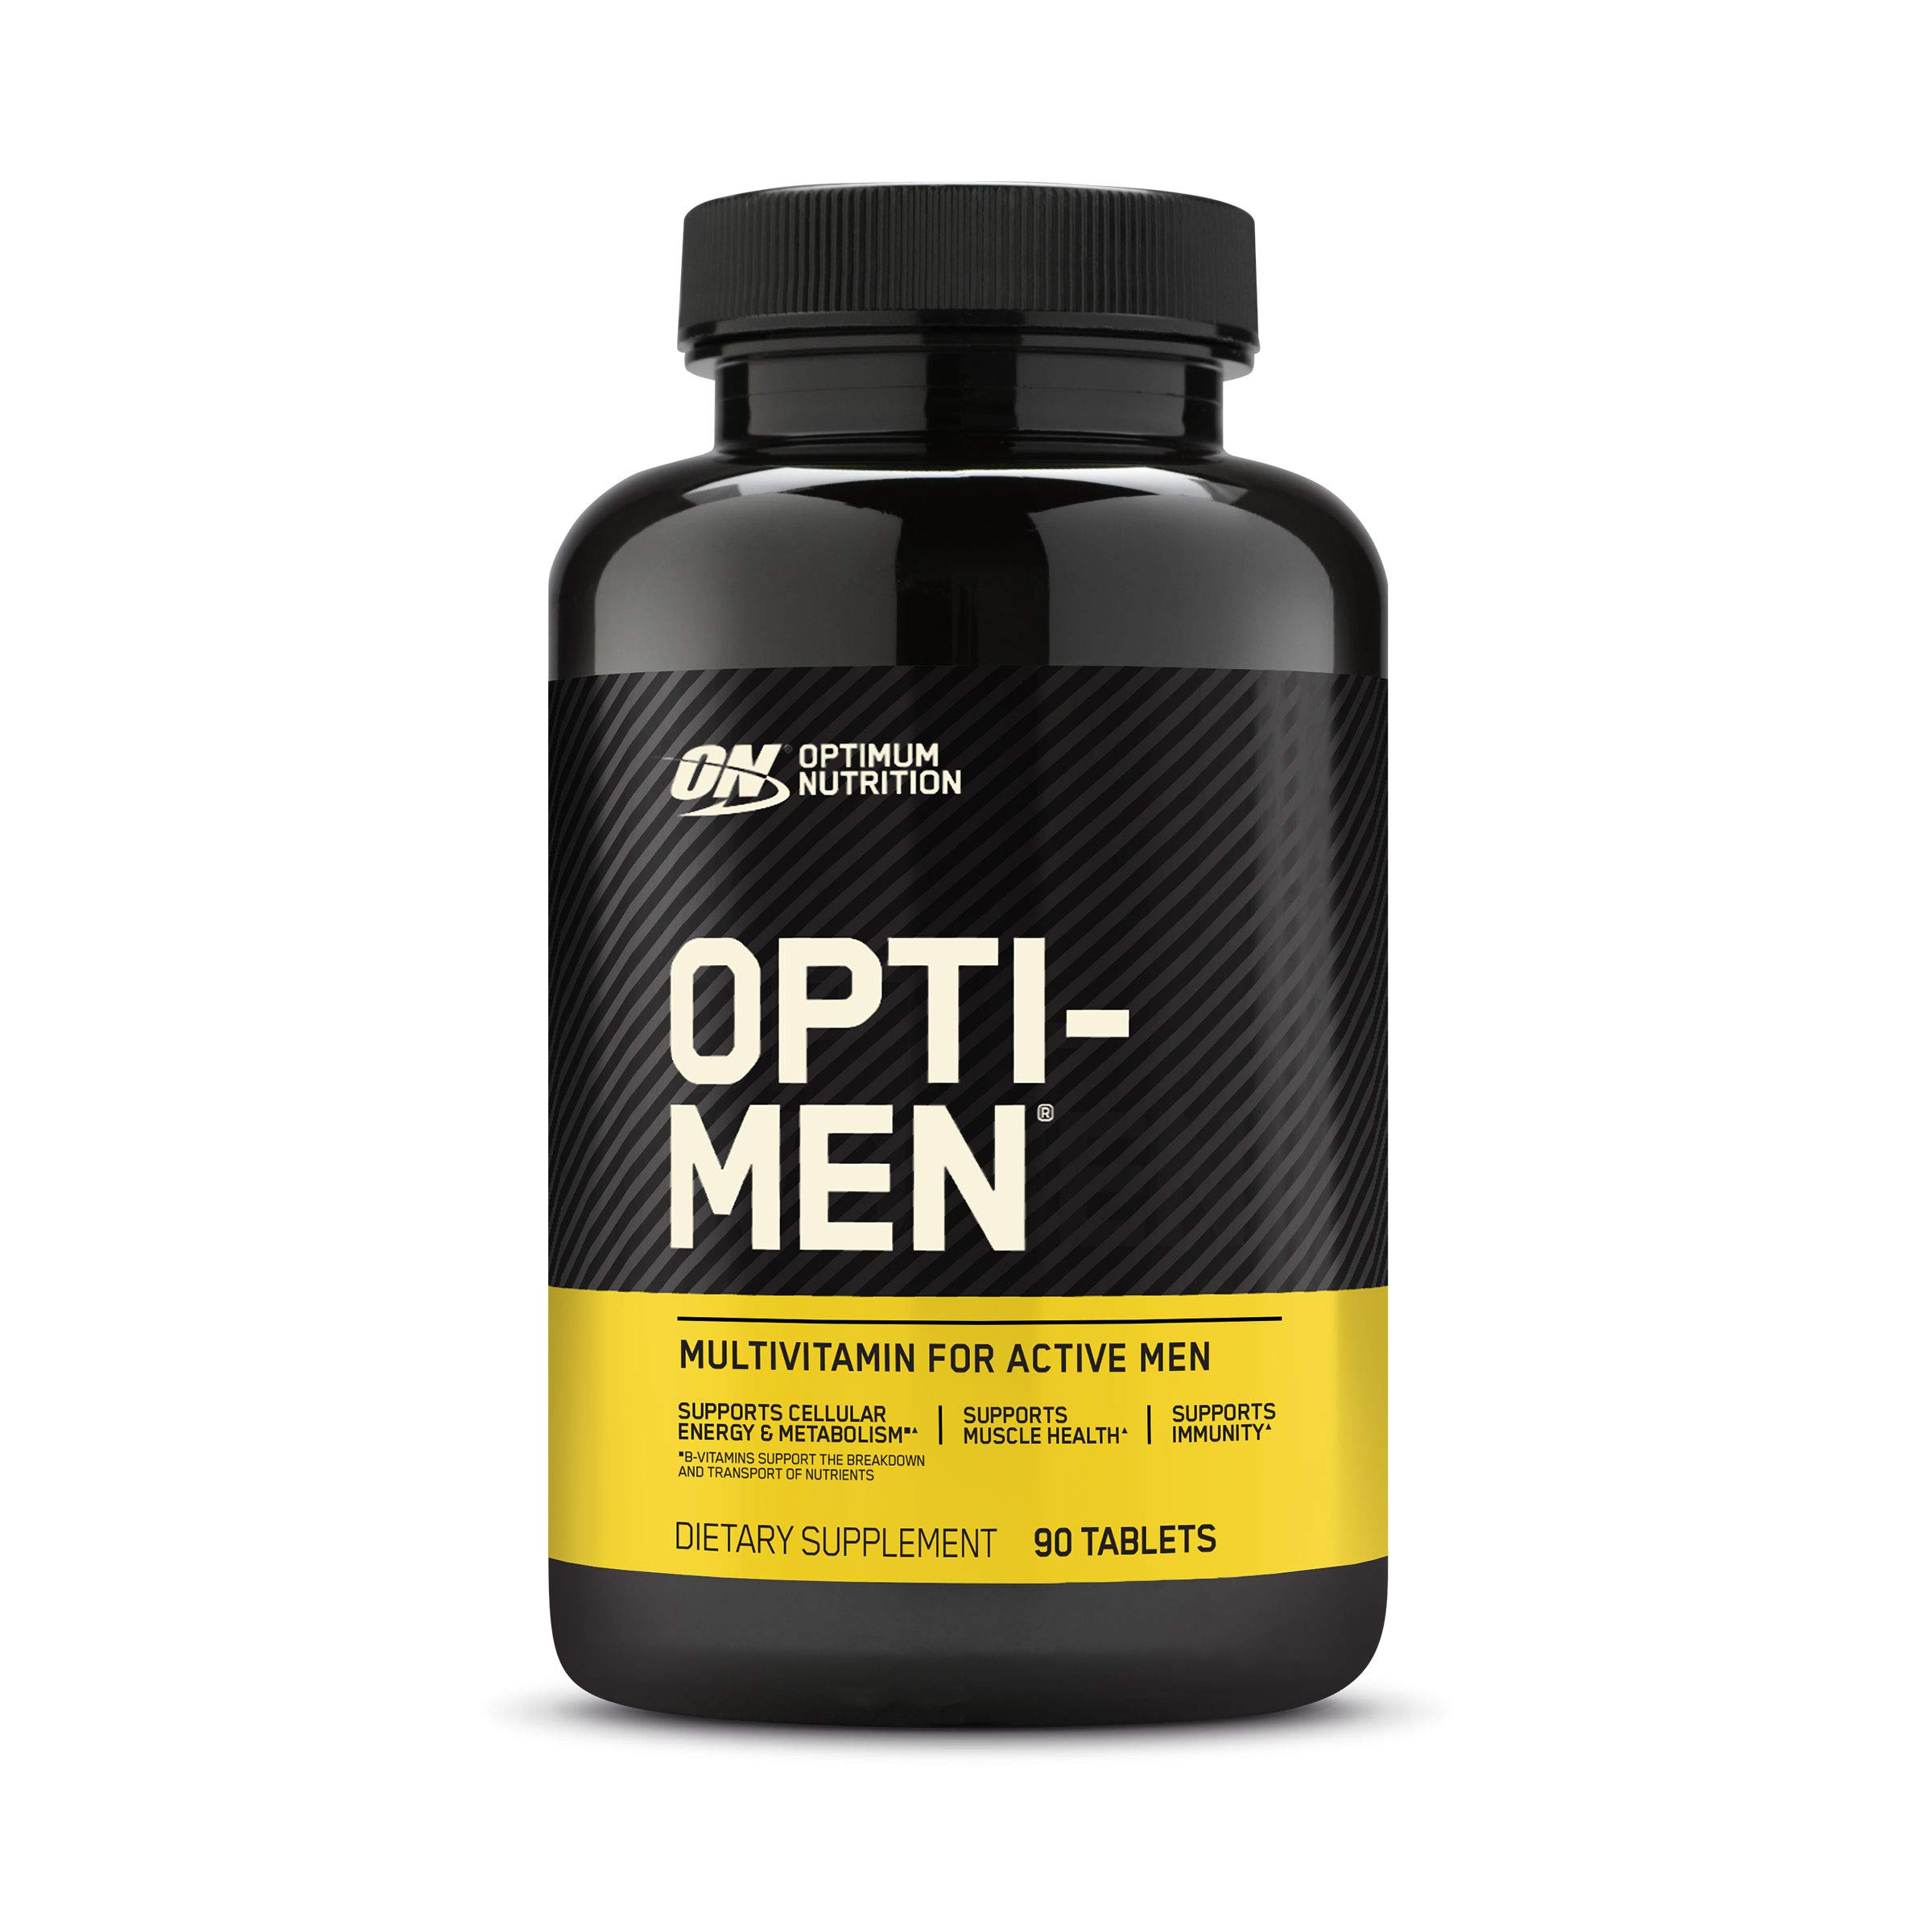 Optimum Nutrition Opti-Men, Vitamin C, Zinc and Vitamin D, E, B12 for Immune Support Mens Daily Multivitamin Supplement, 90 Count (Packaging May Vary)